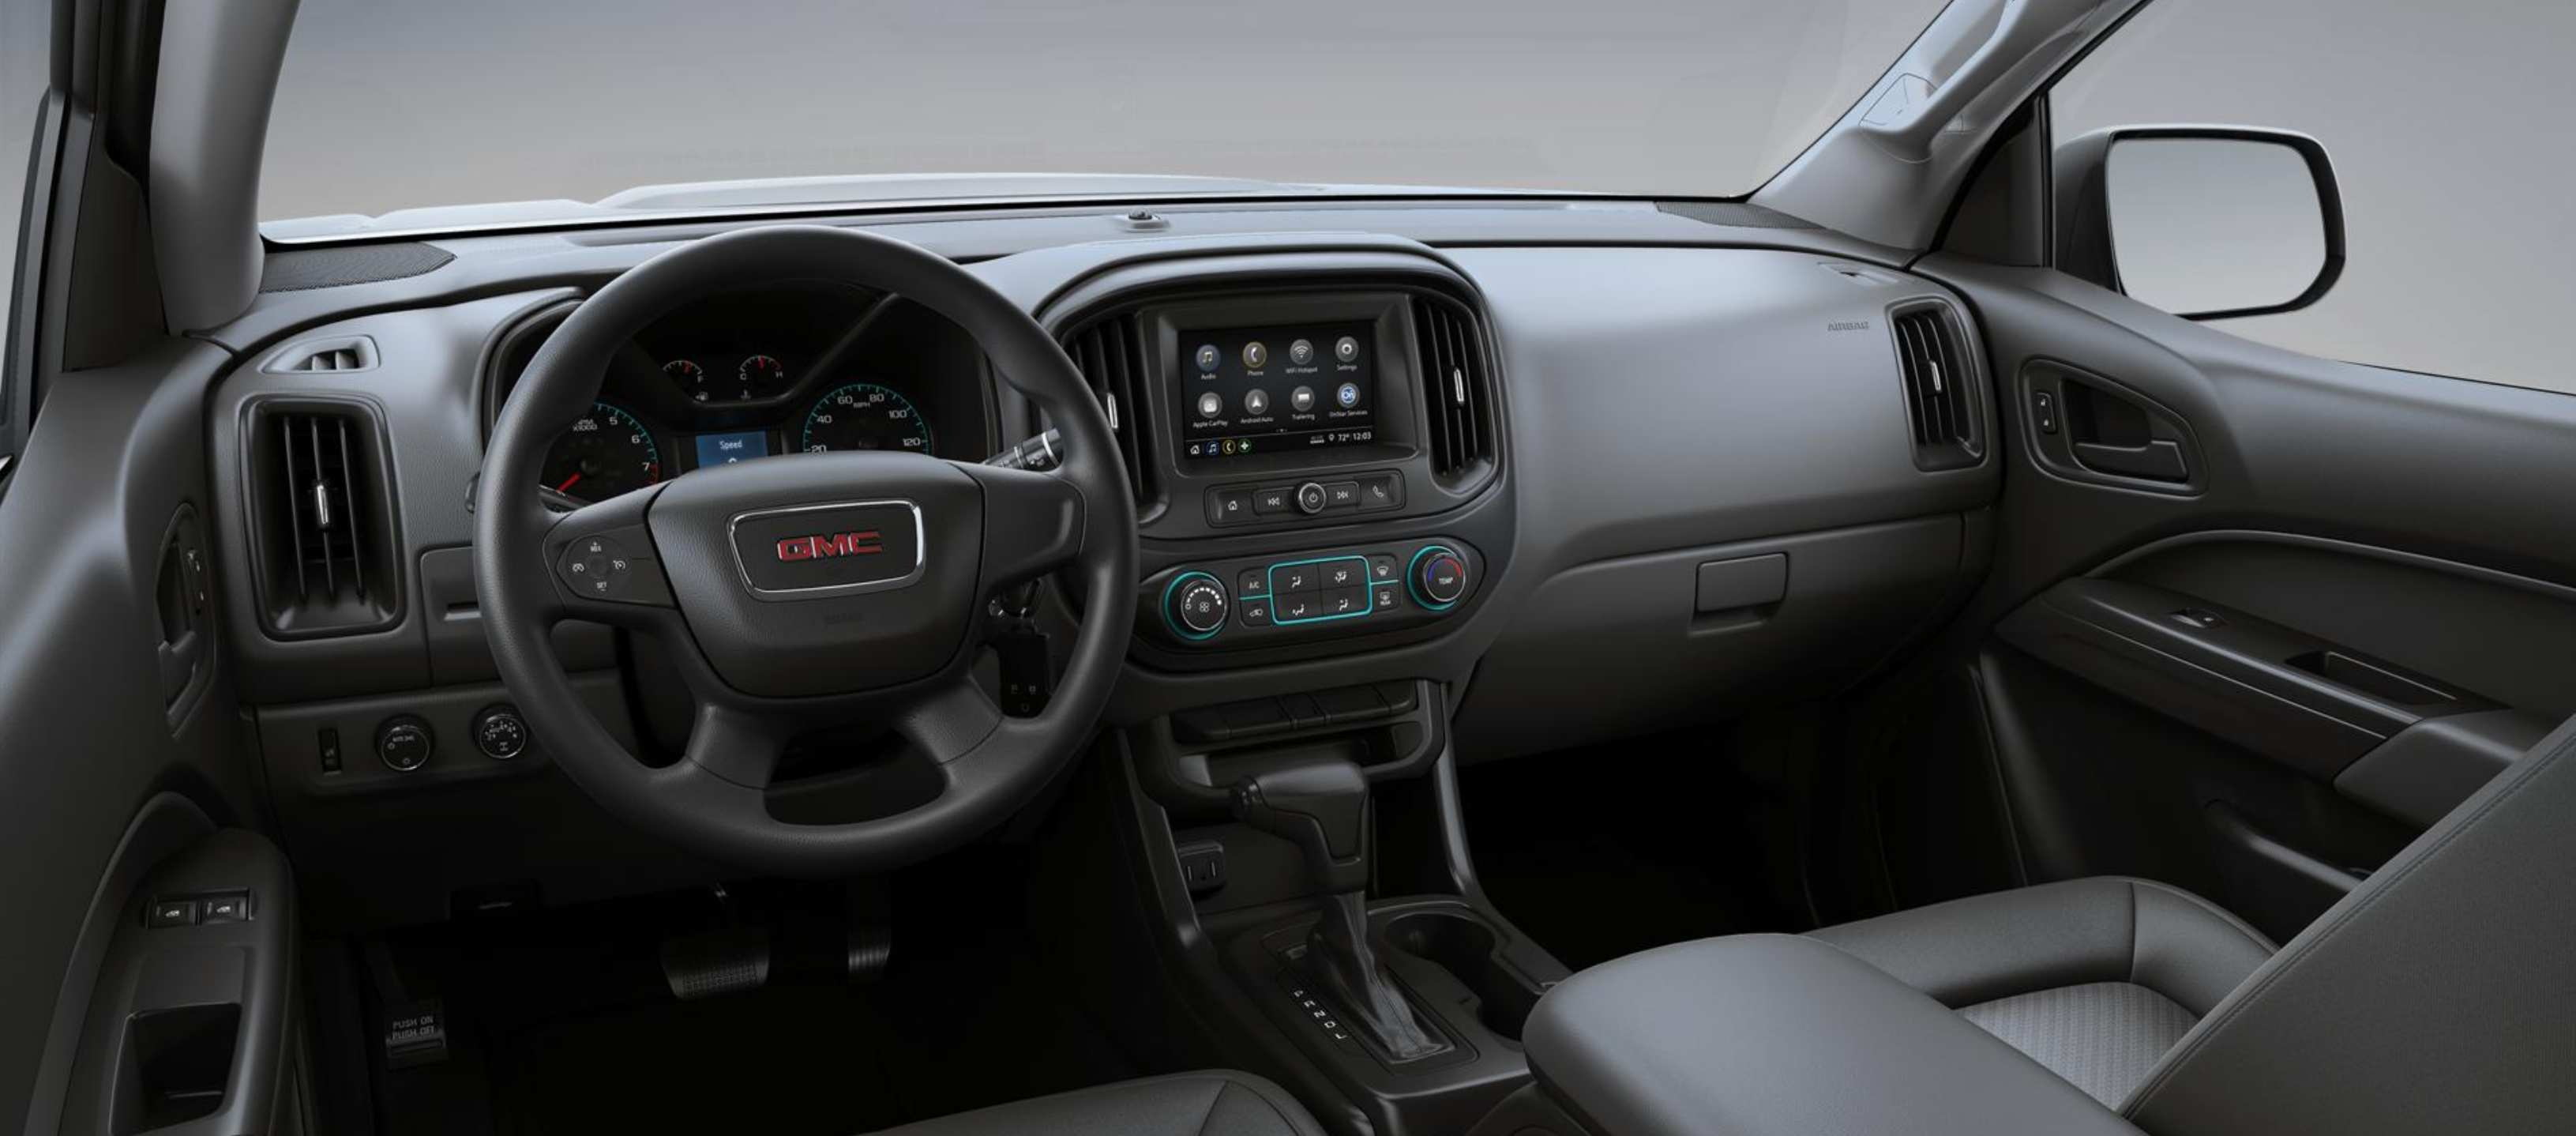 61 Best Review 2019 Gmc Canyon Forum Concept Redesign And Review Performance and New Engine with 2019 Gmc Canyon Forum Concept Redesign And Review